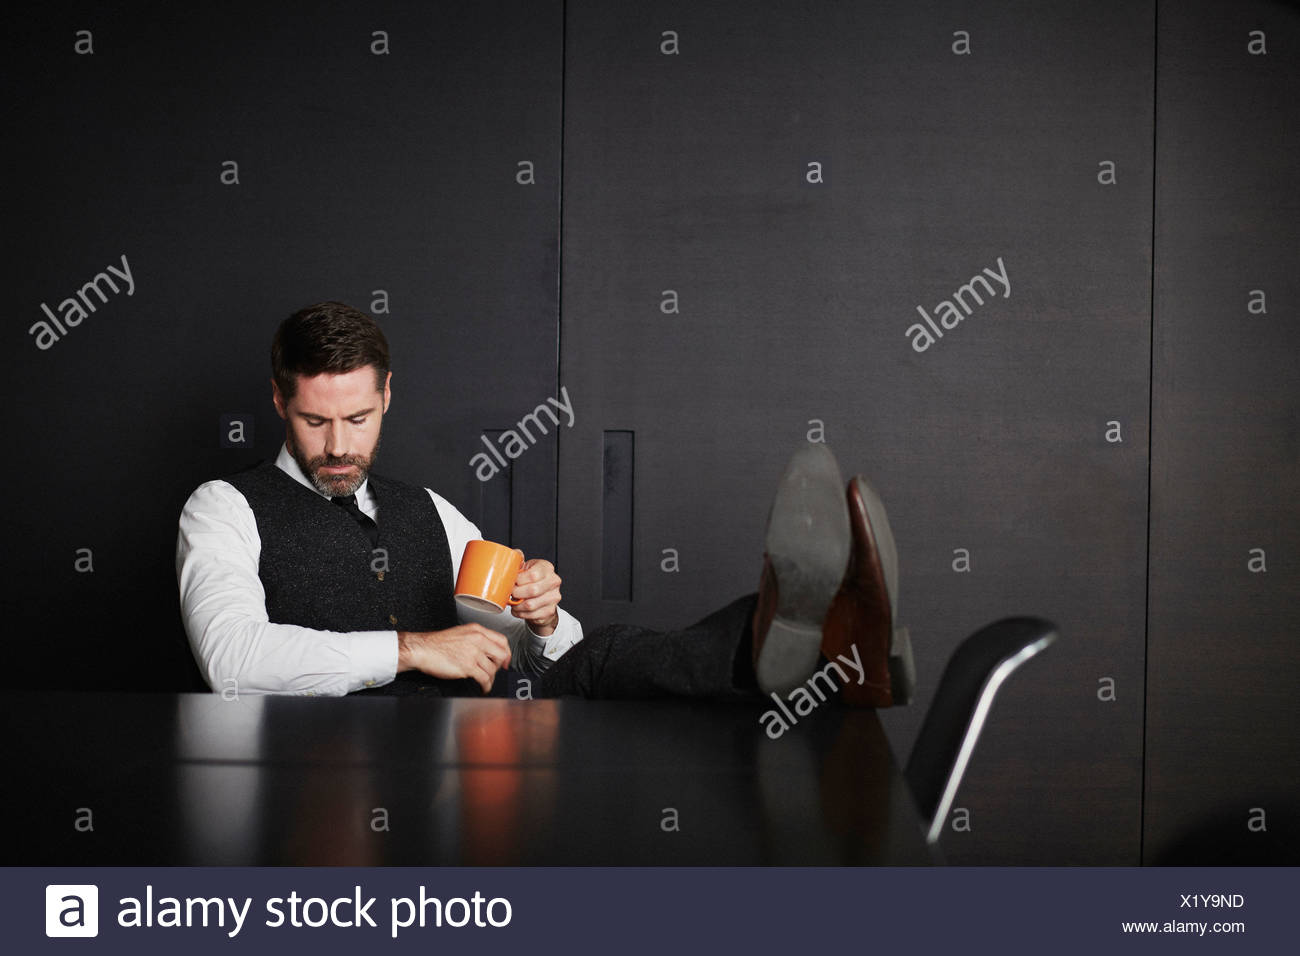 Businessman with feet up holding coffee Photo Stock